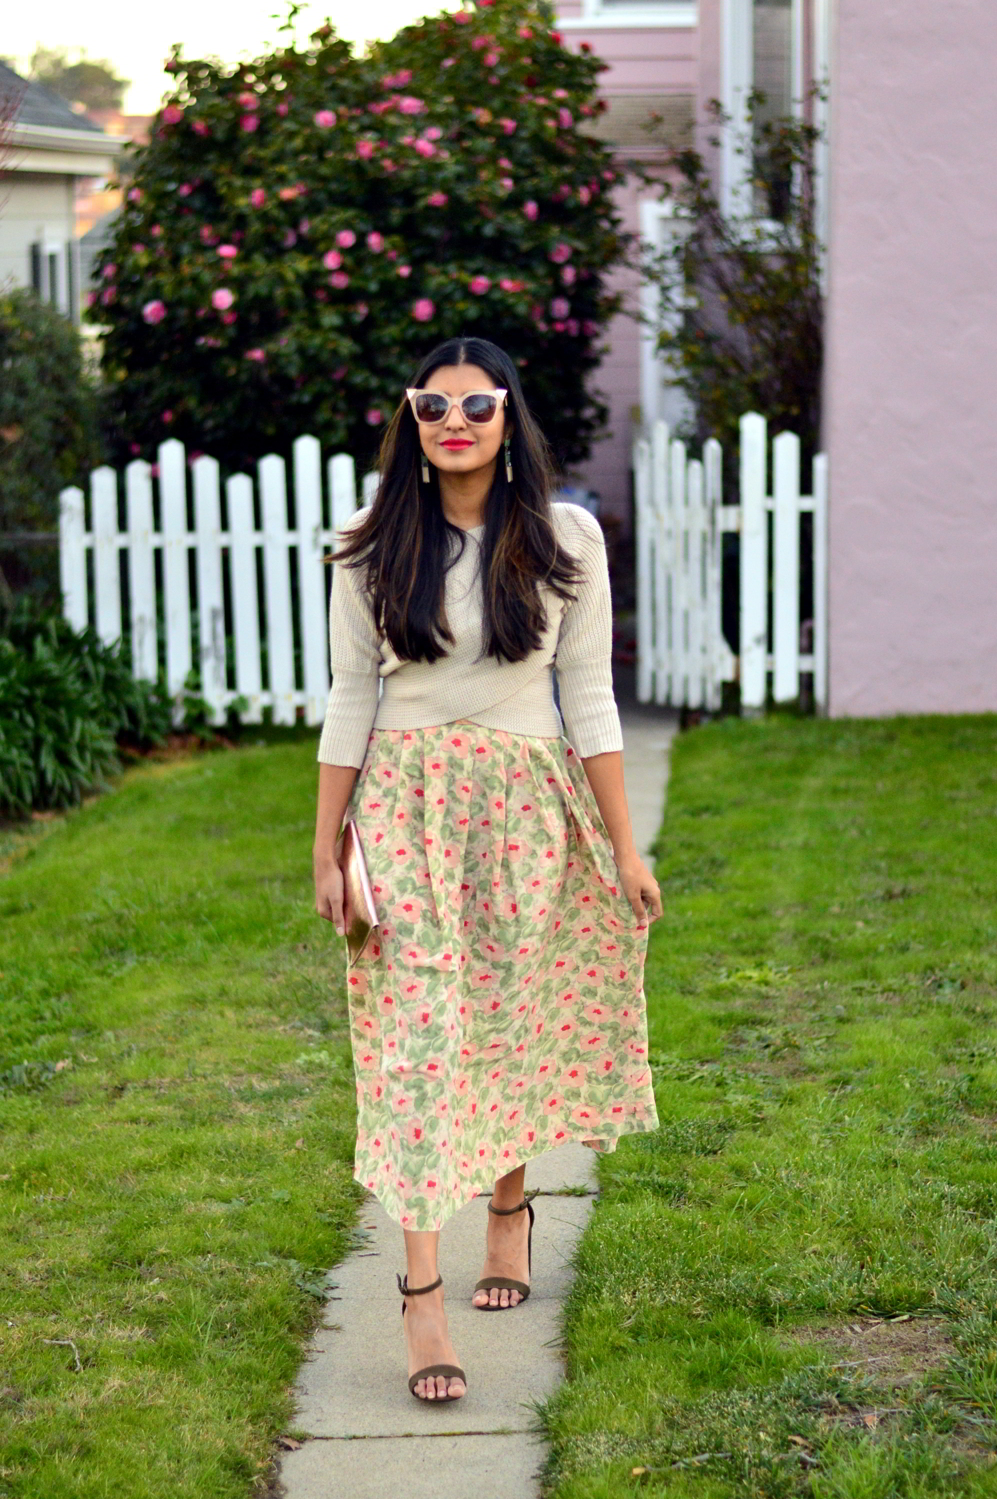 wrap-sweater-cropped-floral-midi-skirt-spring-style-blogger-outfit-cateye-sunglasses 3